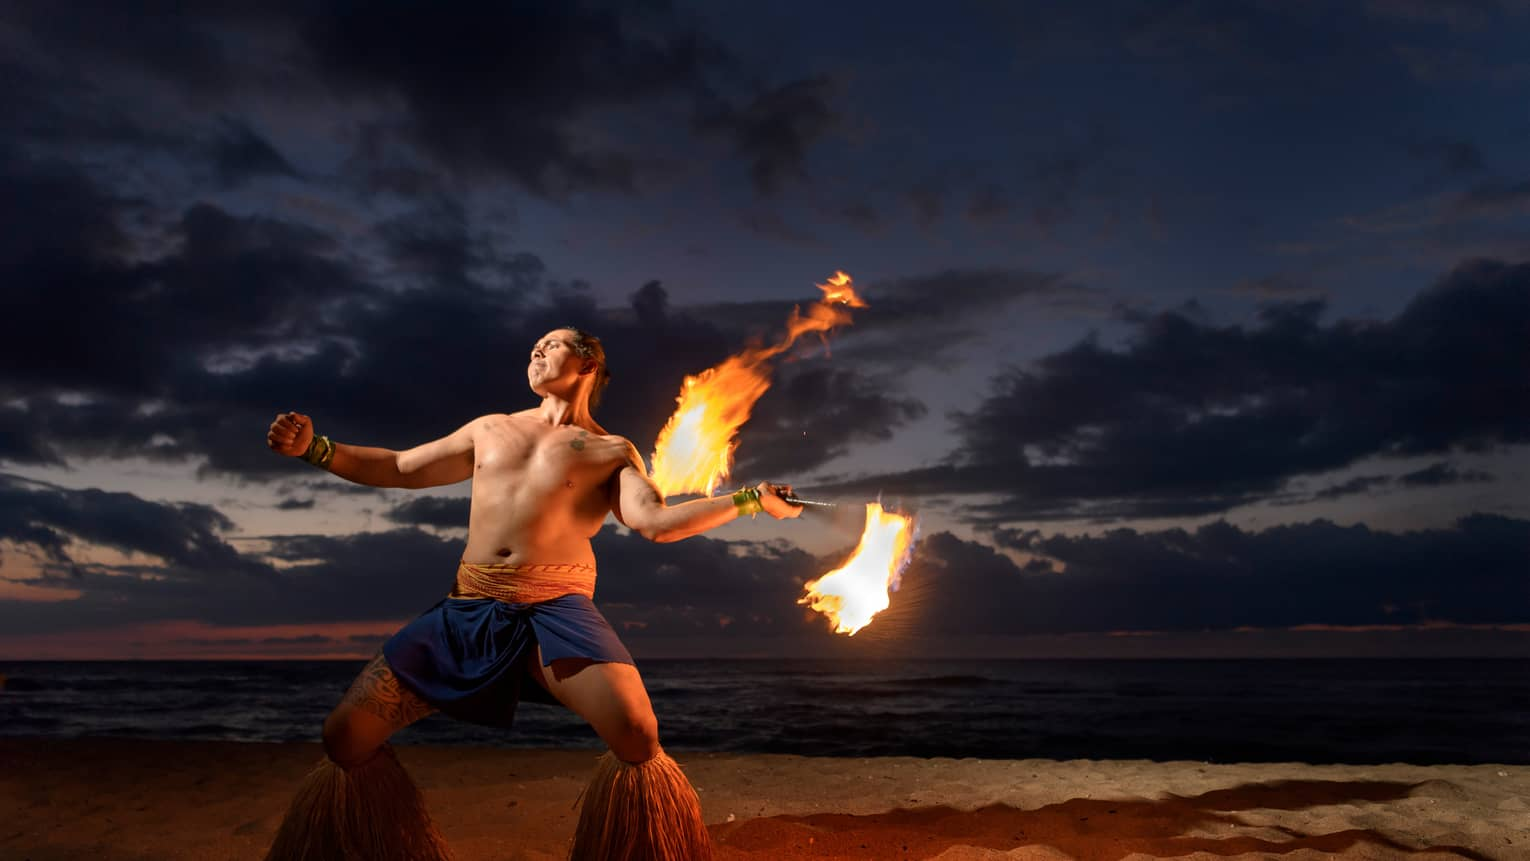 Man wearing traditional Polynesian outfit dances with torch on beach at night